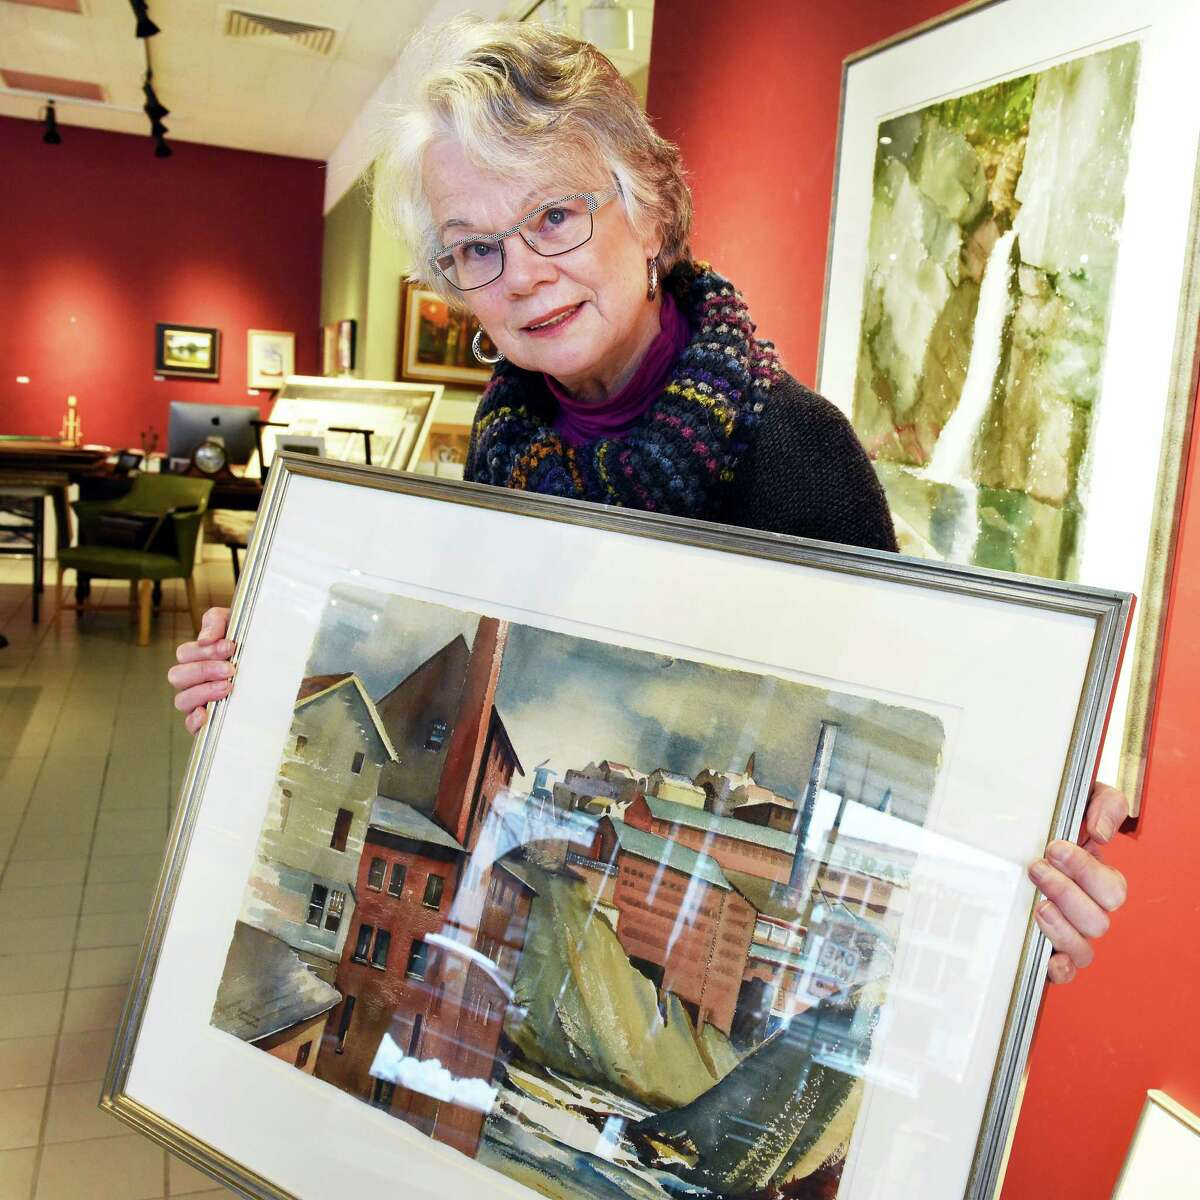 Deane Semerad Pfeil of Saratoga Springs prepares a retrospective art show of her late mother, Marjorie Semerad, a popular Russell Sage College art professor, at Clements Art Tuesday Jan. 24, 2017 in Troy, NY. The show opens on Troy Night Out. (John Carl D'Annibale / Times Union)